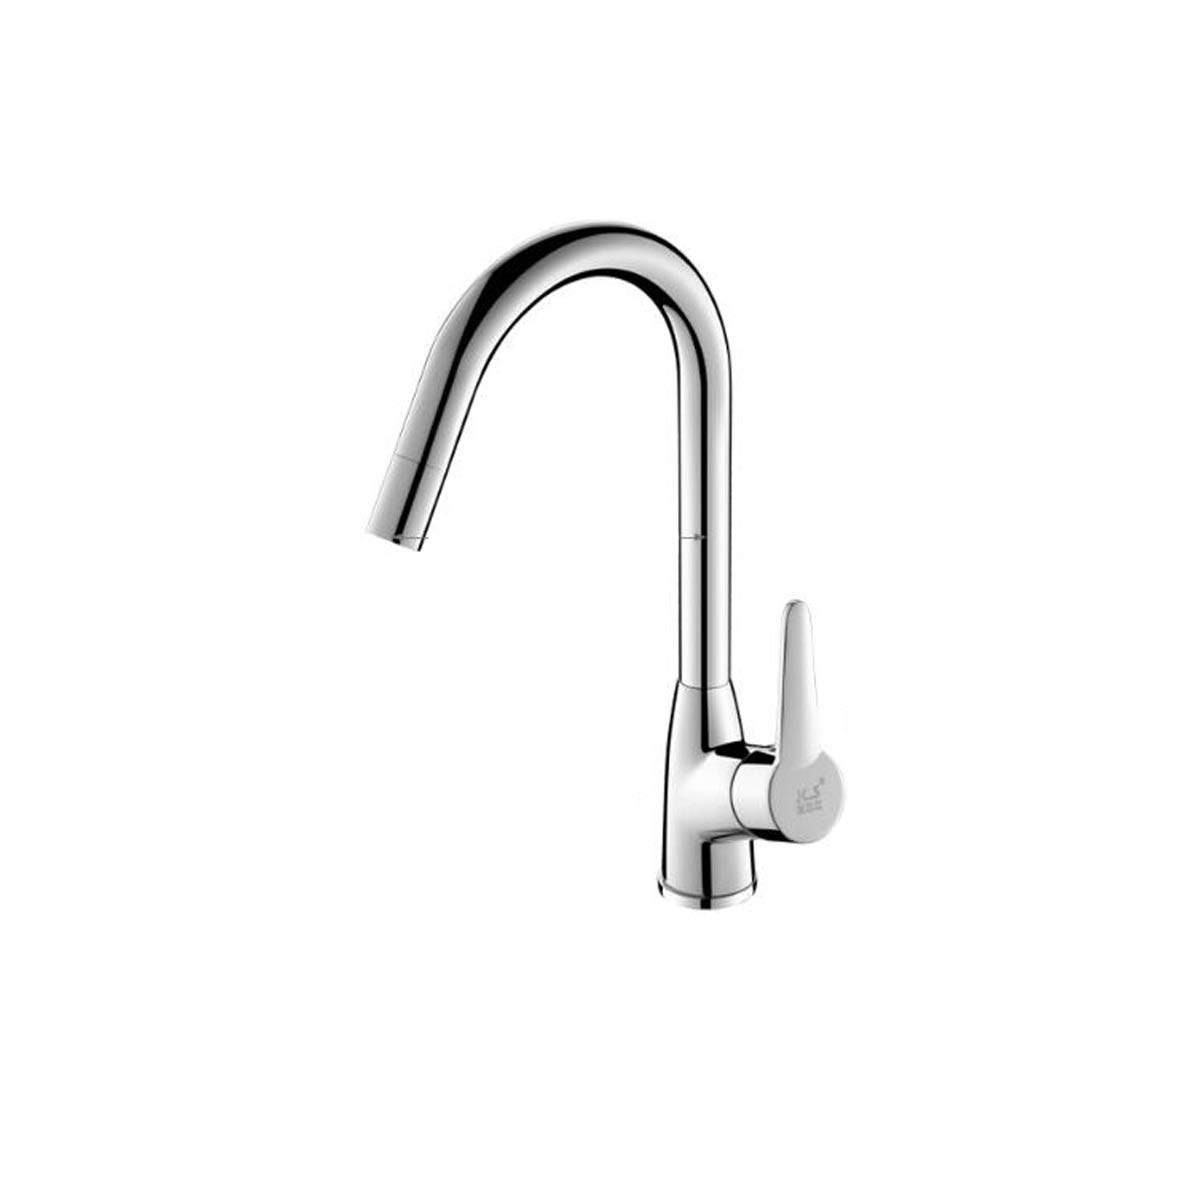 QIANZICAIDIANJIA Single Handle Kitchen Faucet,Single Level Stainless Steel Kitchen Sink Faucets,Sprayer, Easy To Install stainless steel faucet (Color : Silver) by QIANZICAIDIANJIA